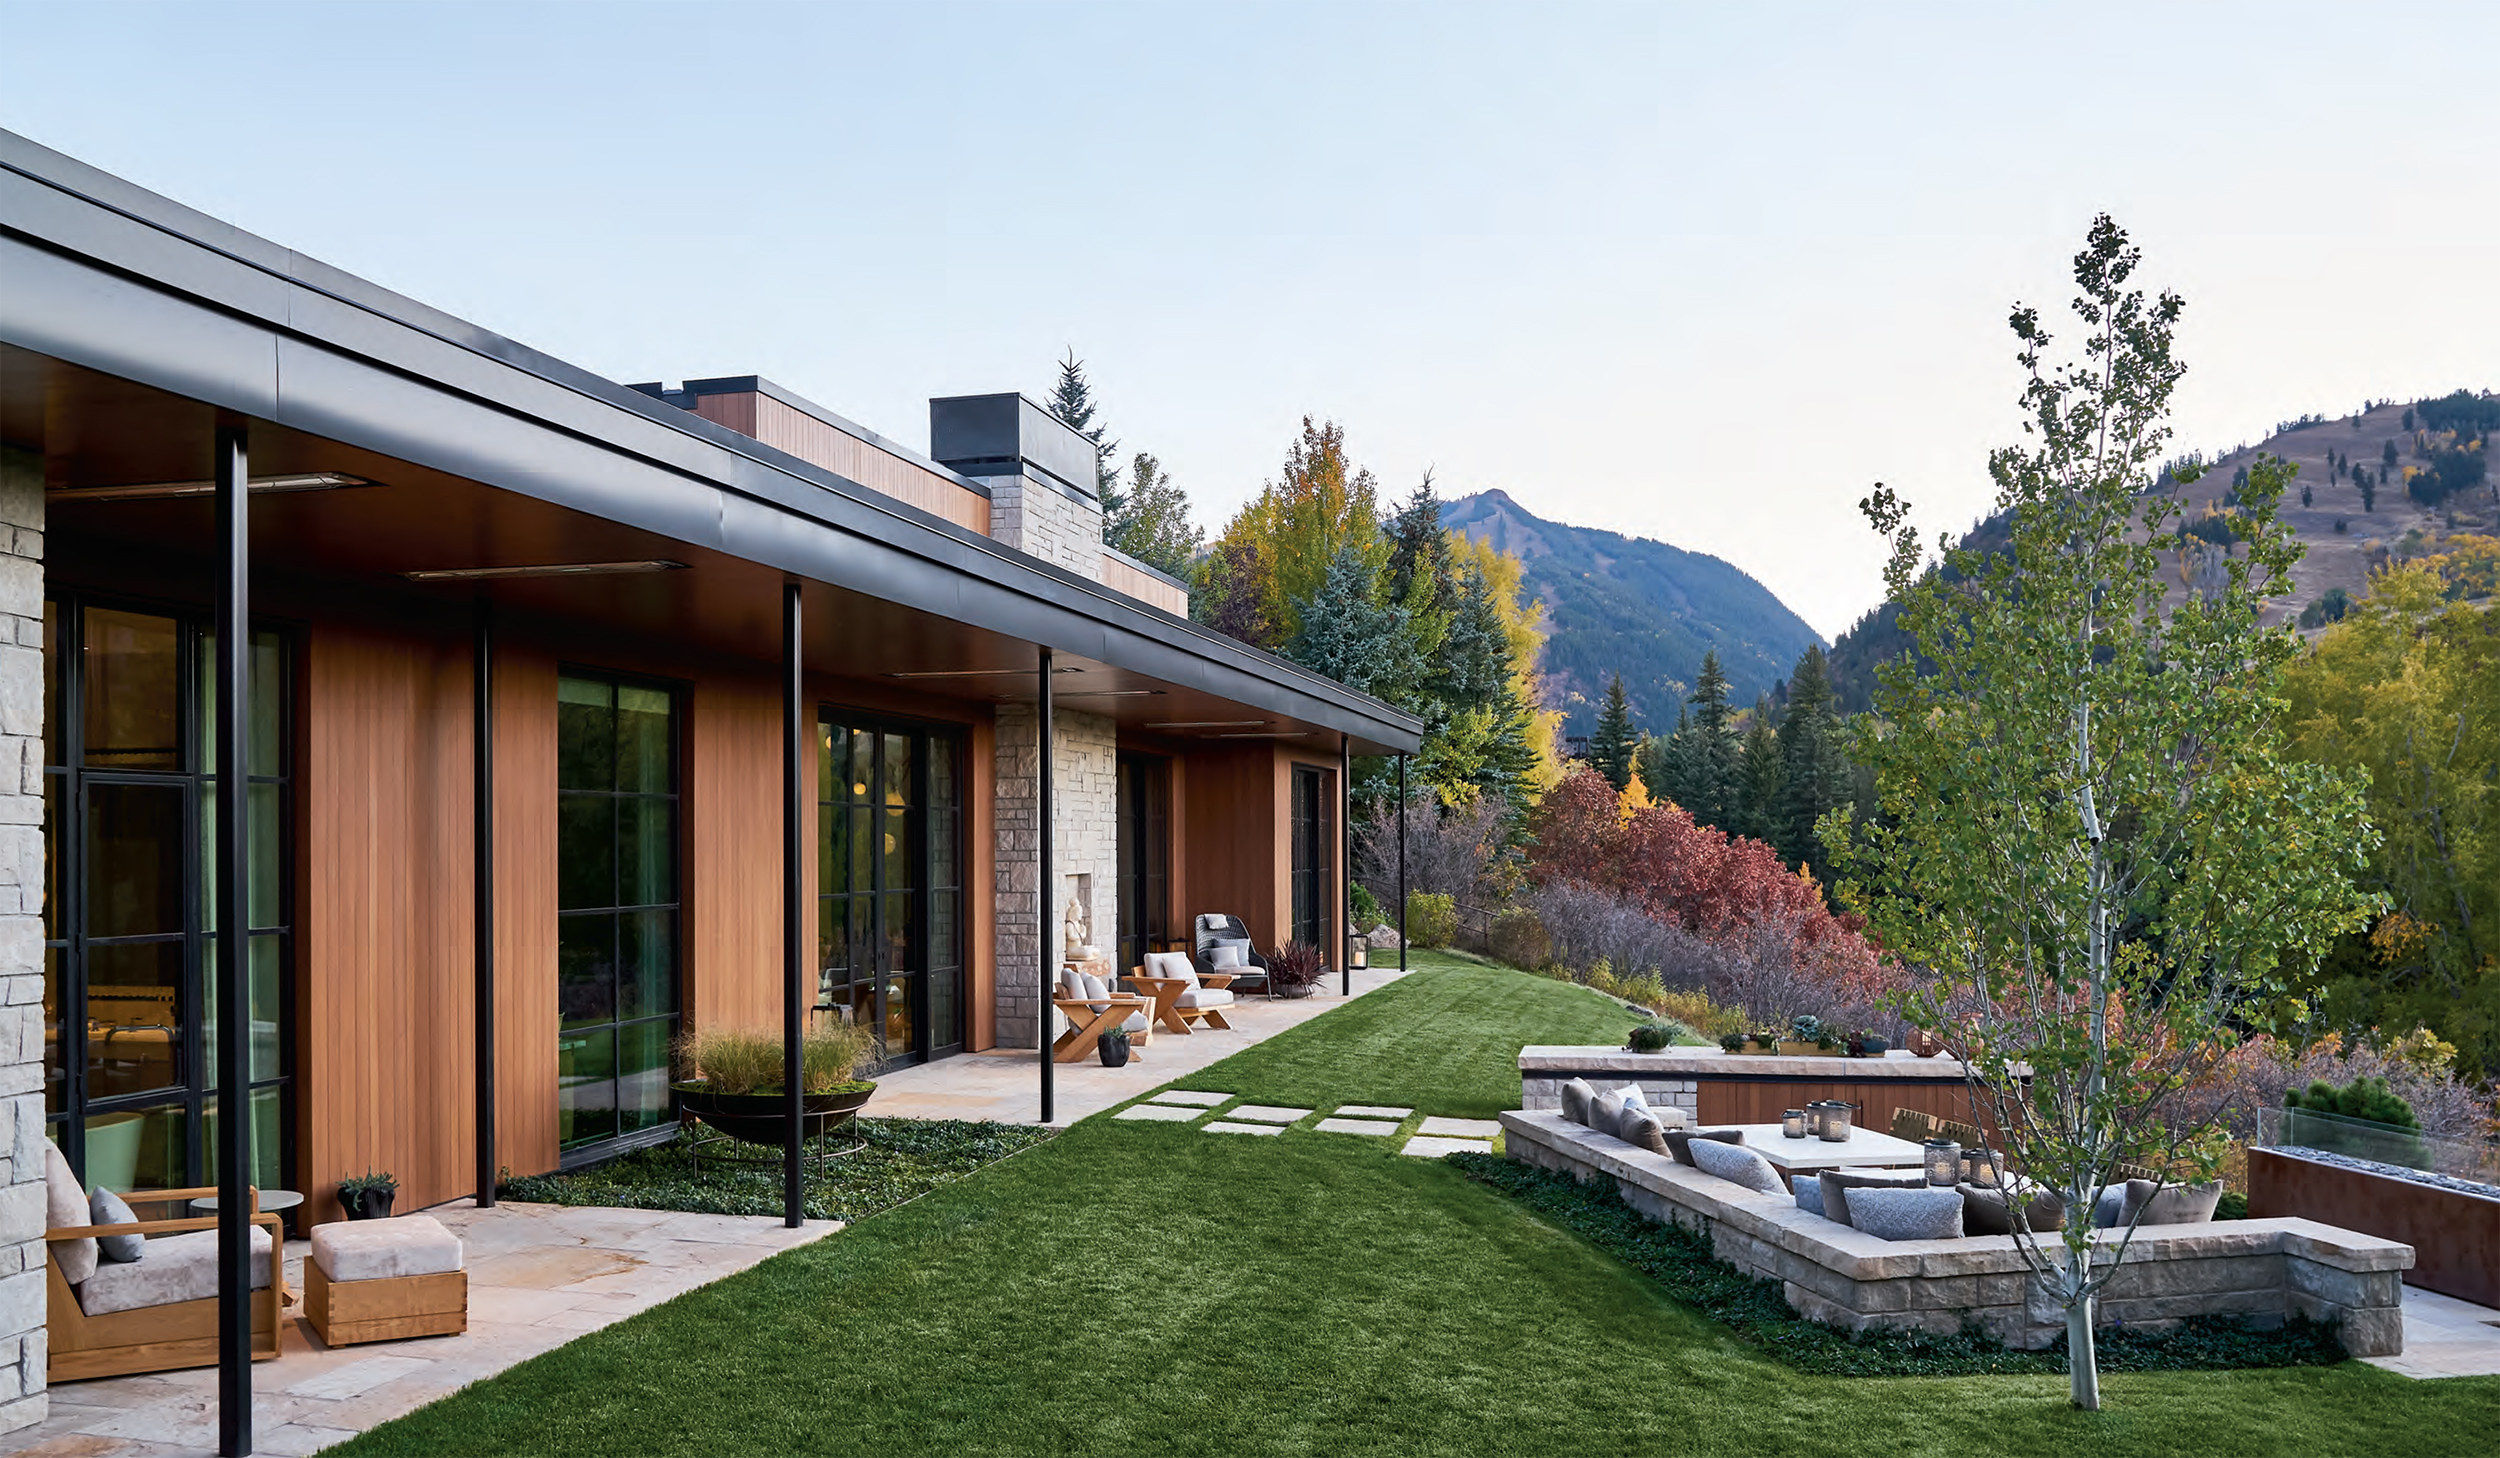 Custom steel windows by Brombal blend harmoniously with Aspen's landscape.